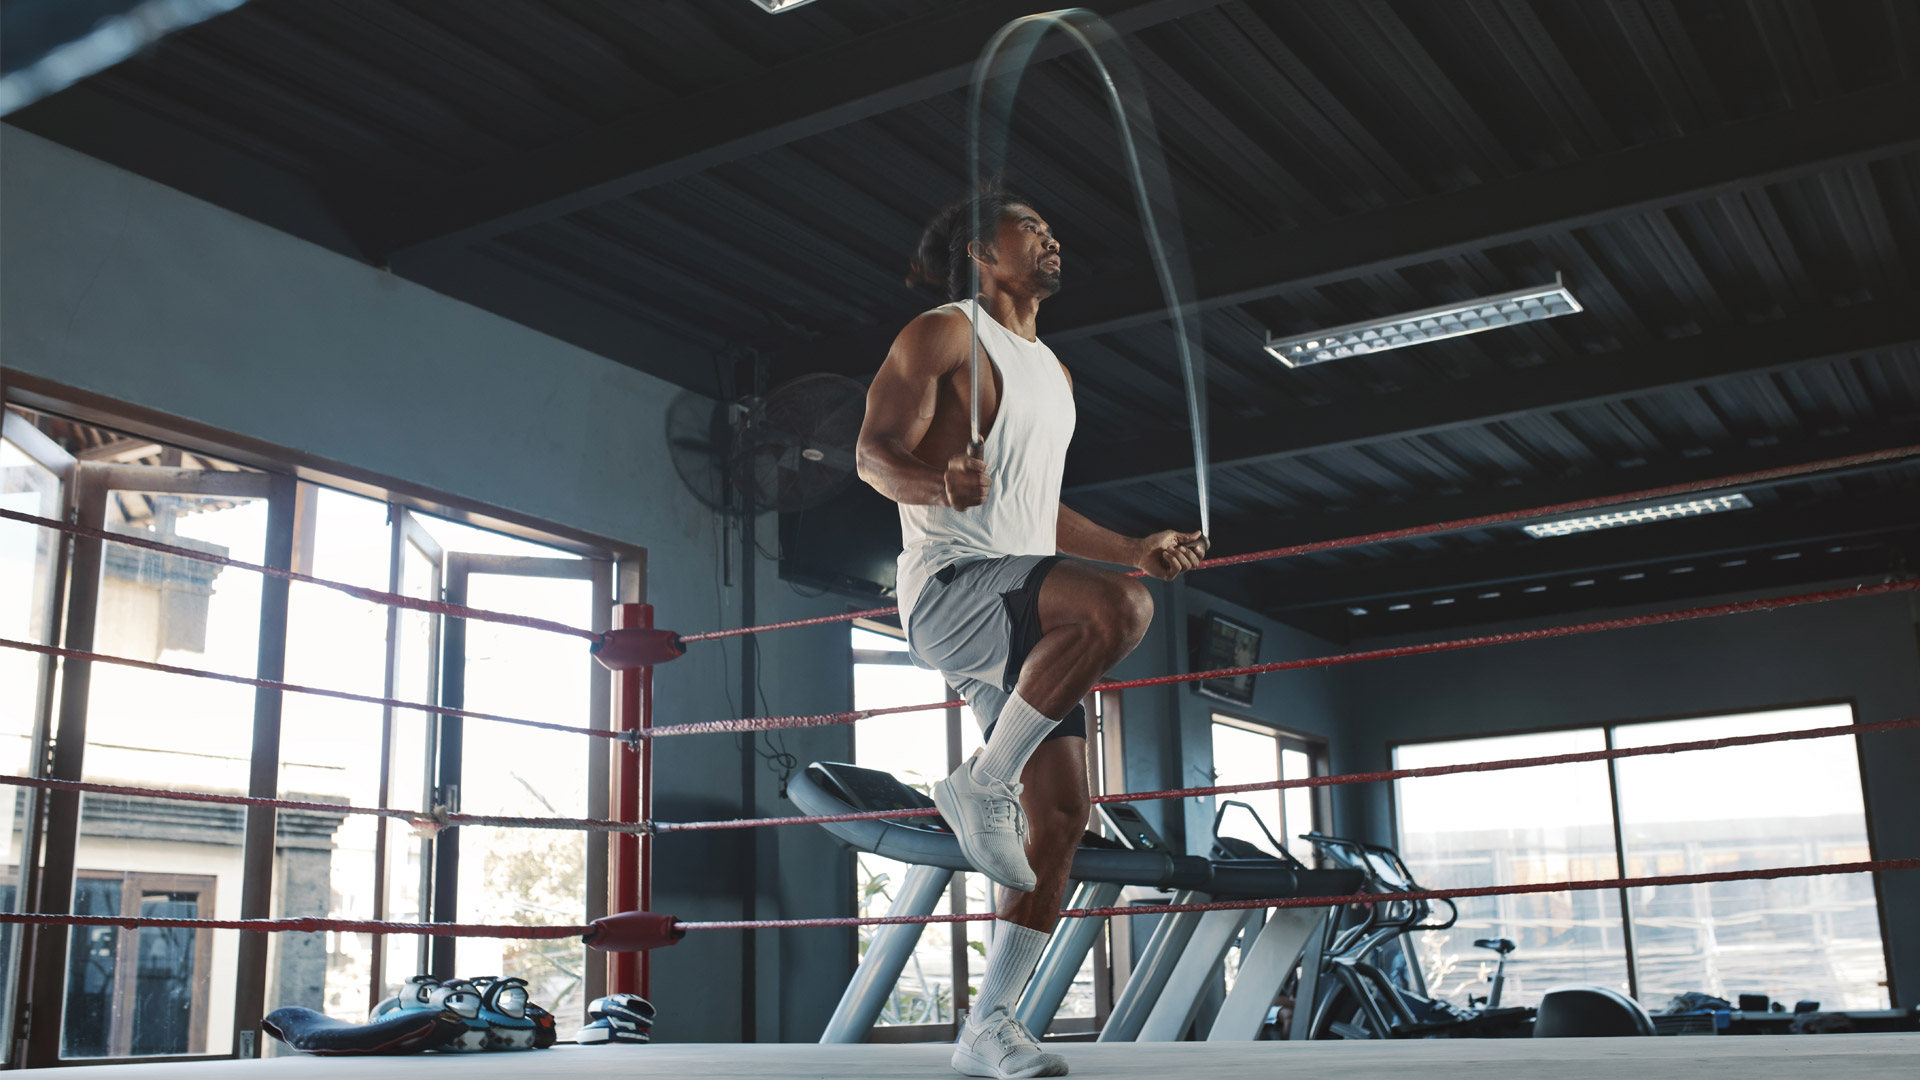 MXT athlete using rpm speed rope at home-gym wearing nike shoes